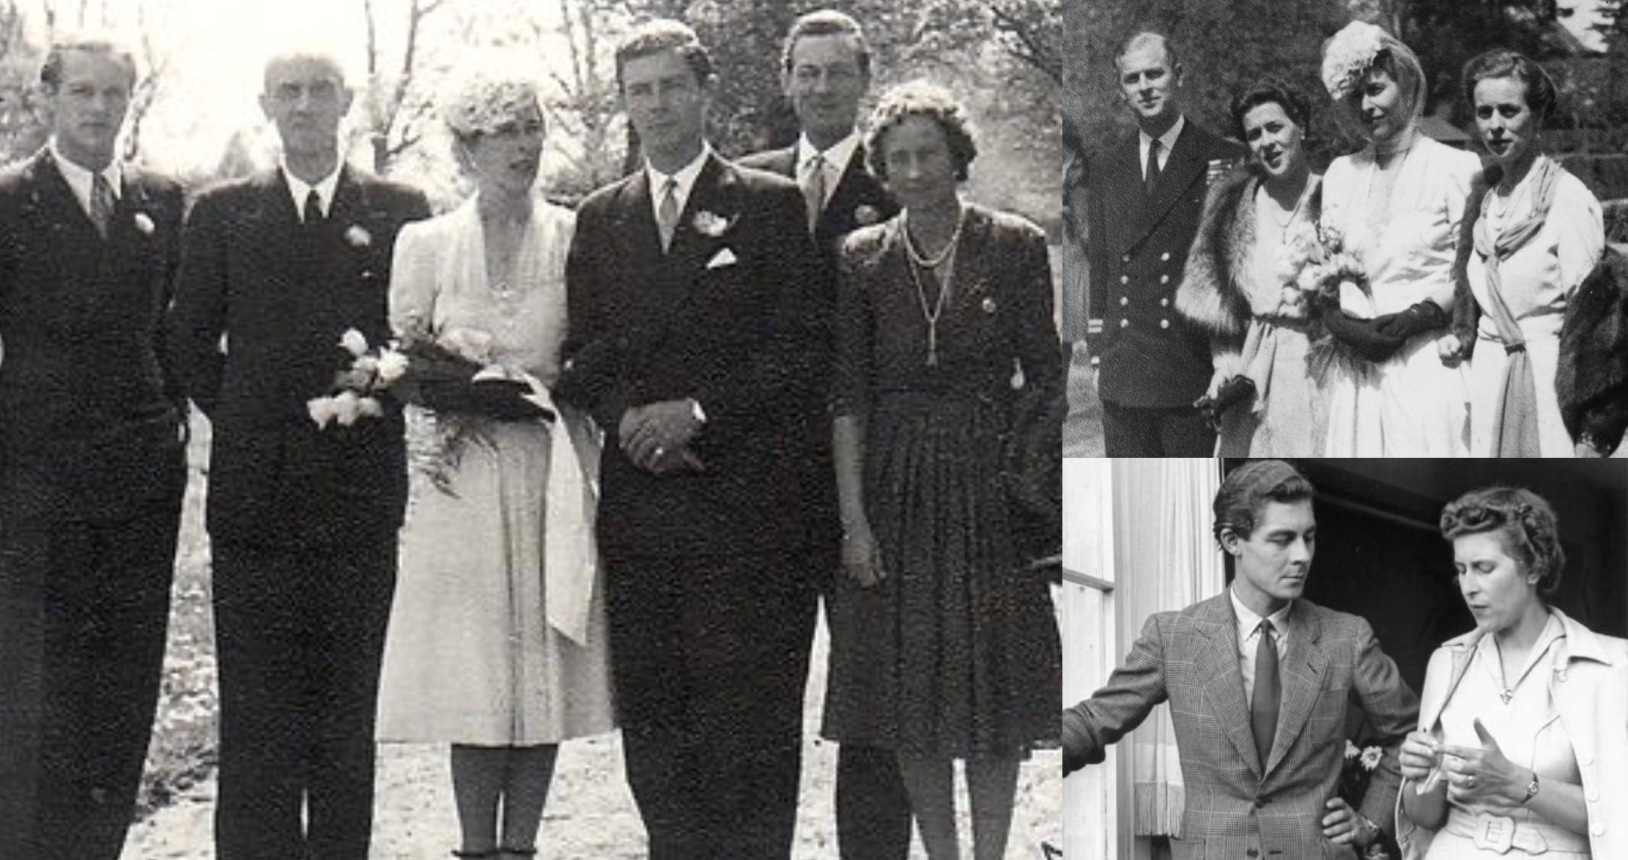 Wedding of Prince George William of Hanover and Princess Sophie of Greece, 1946